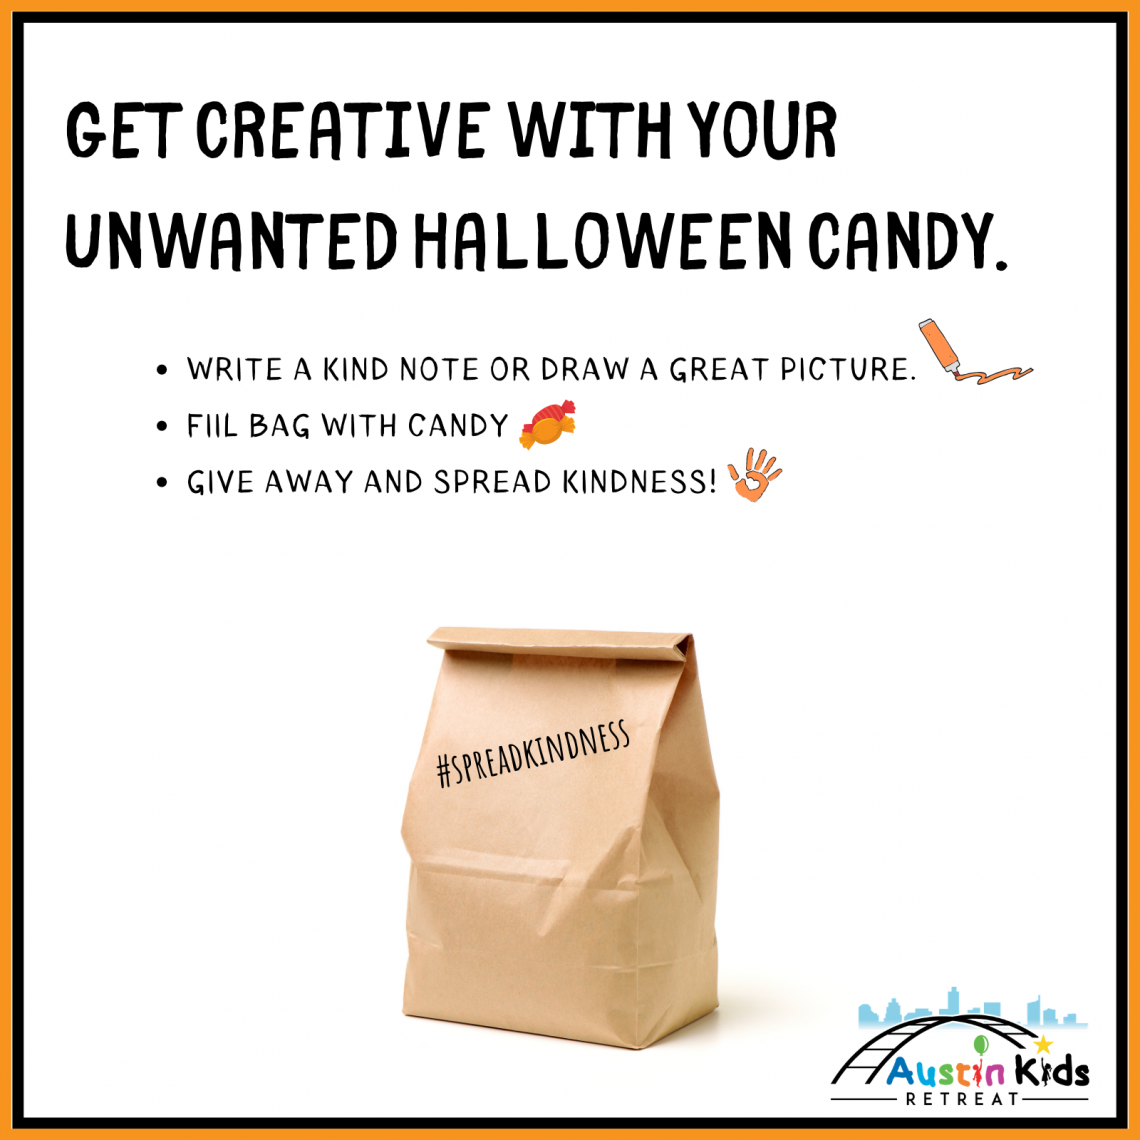 Spreadkindness with Halloween Candy